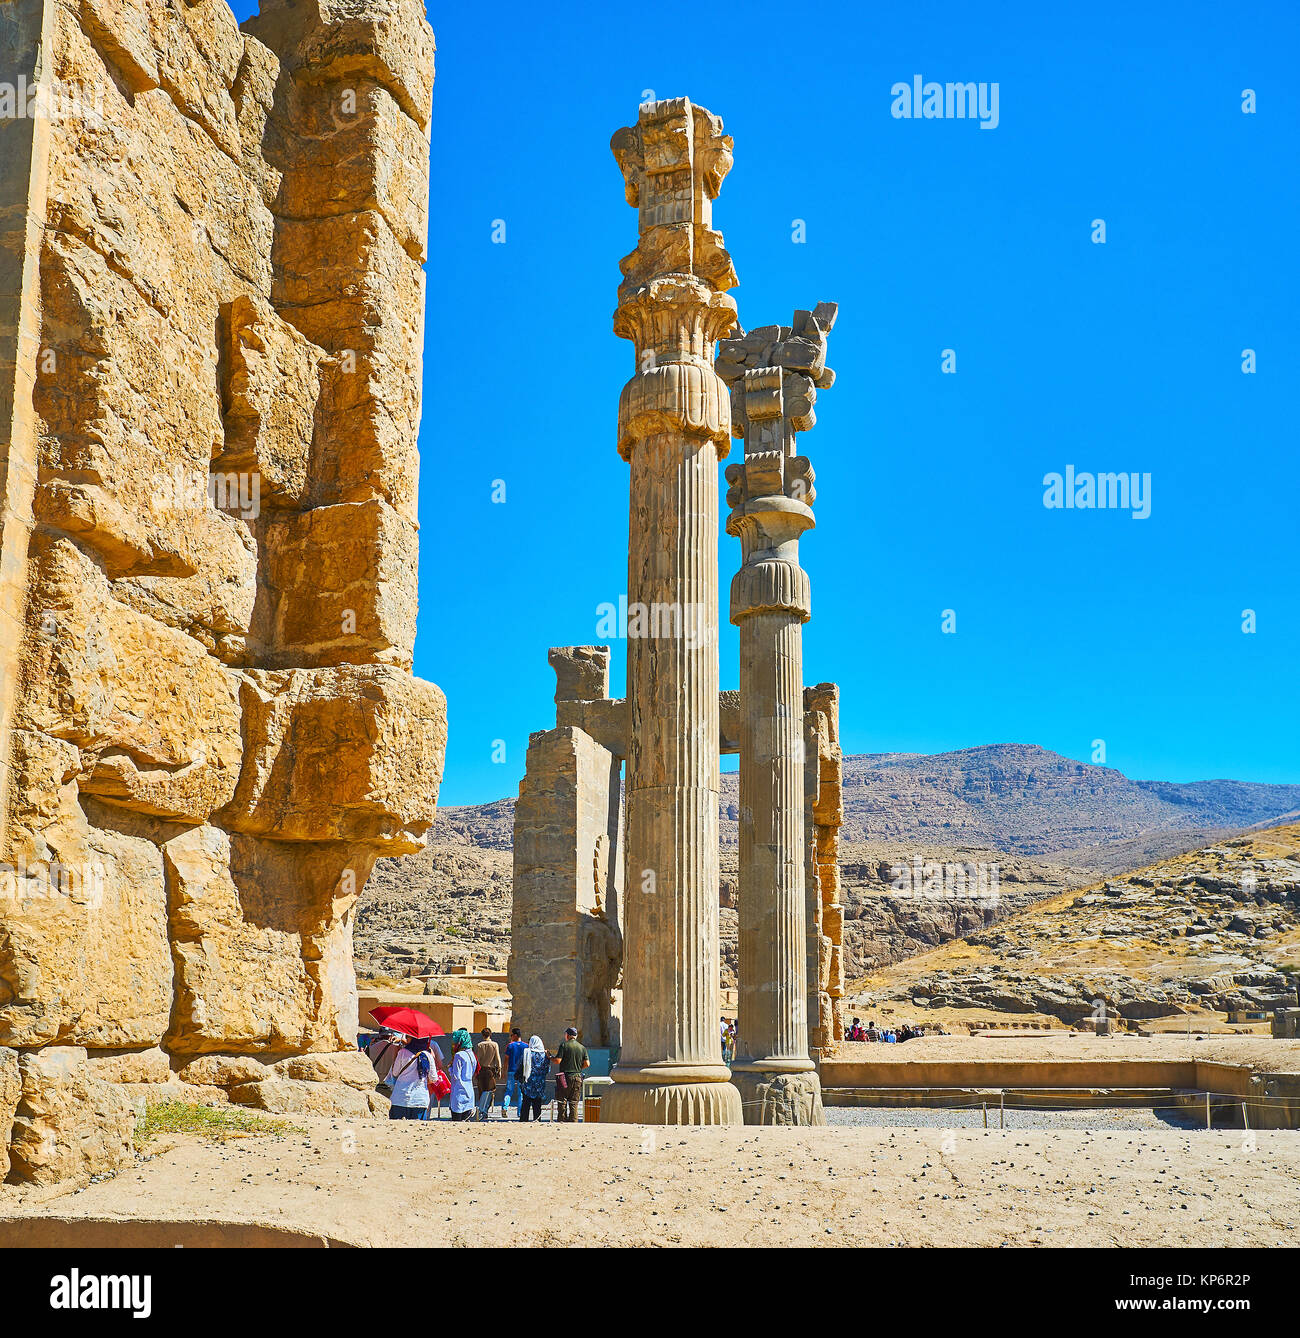 PERSEPOLIS, IRAN - OCTOBER 13, 2017: The ruins of All Nations Gate (Xerxes Gate) with preserved slender carved columns, Stock Photo